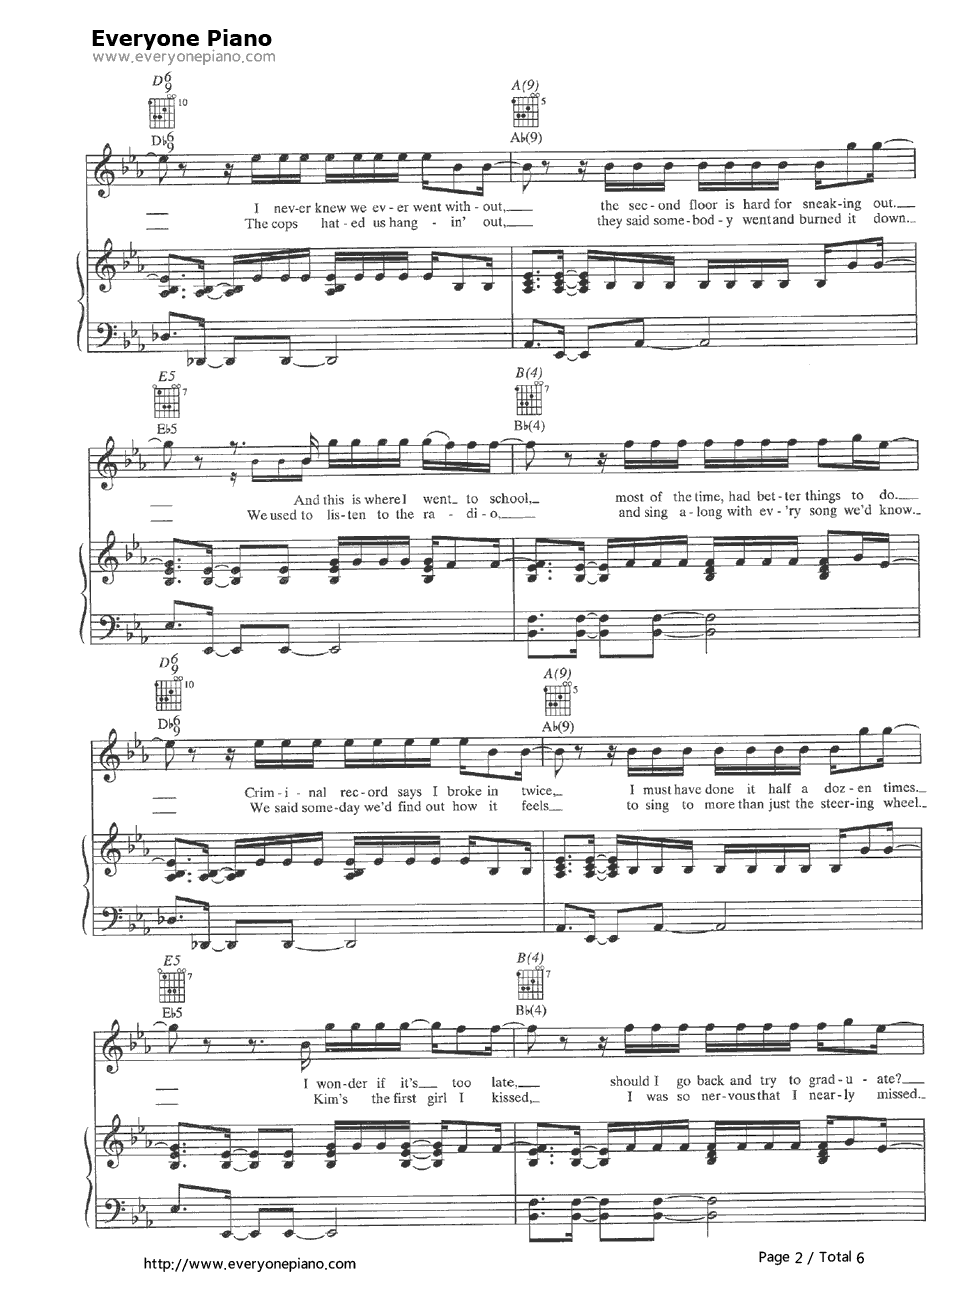 Photograph-Nickelback Stave Preview 2-Free Piano Sheet Music u0026 Piano Chords